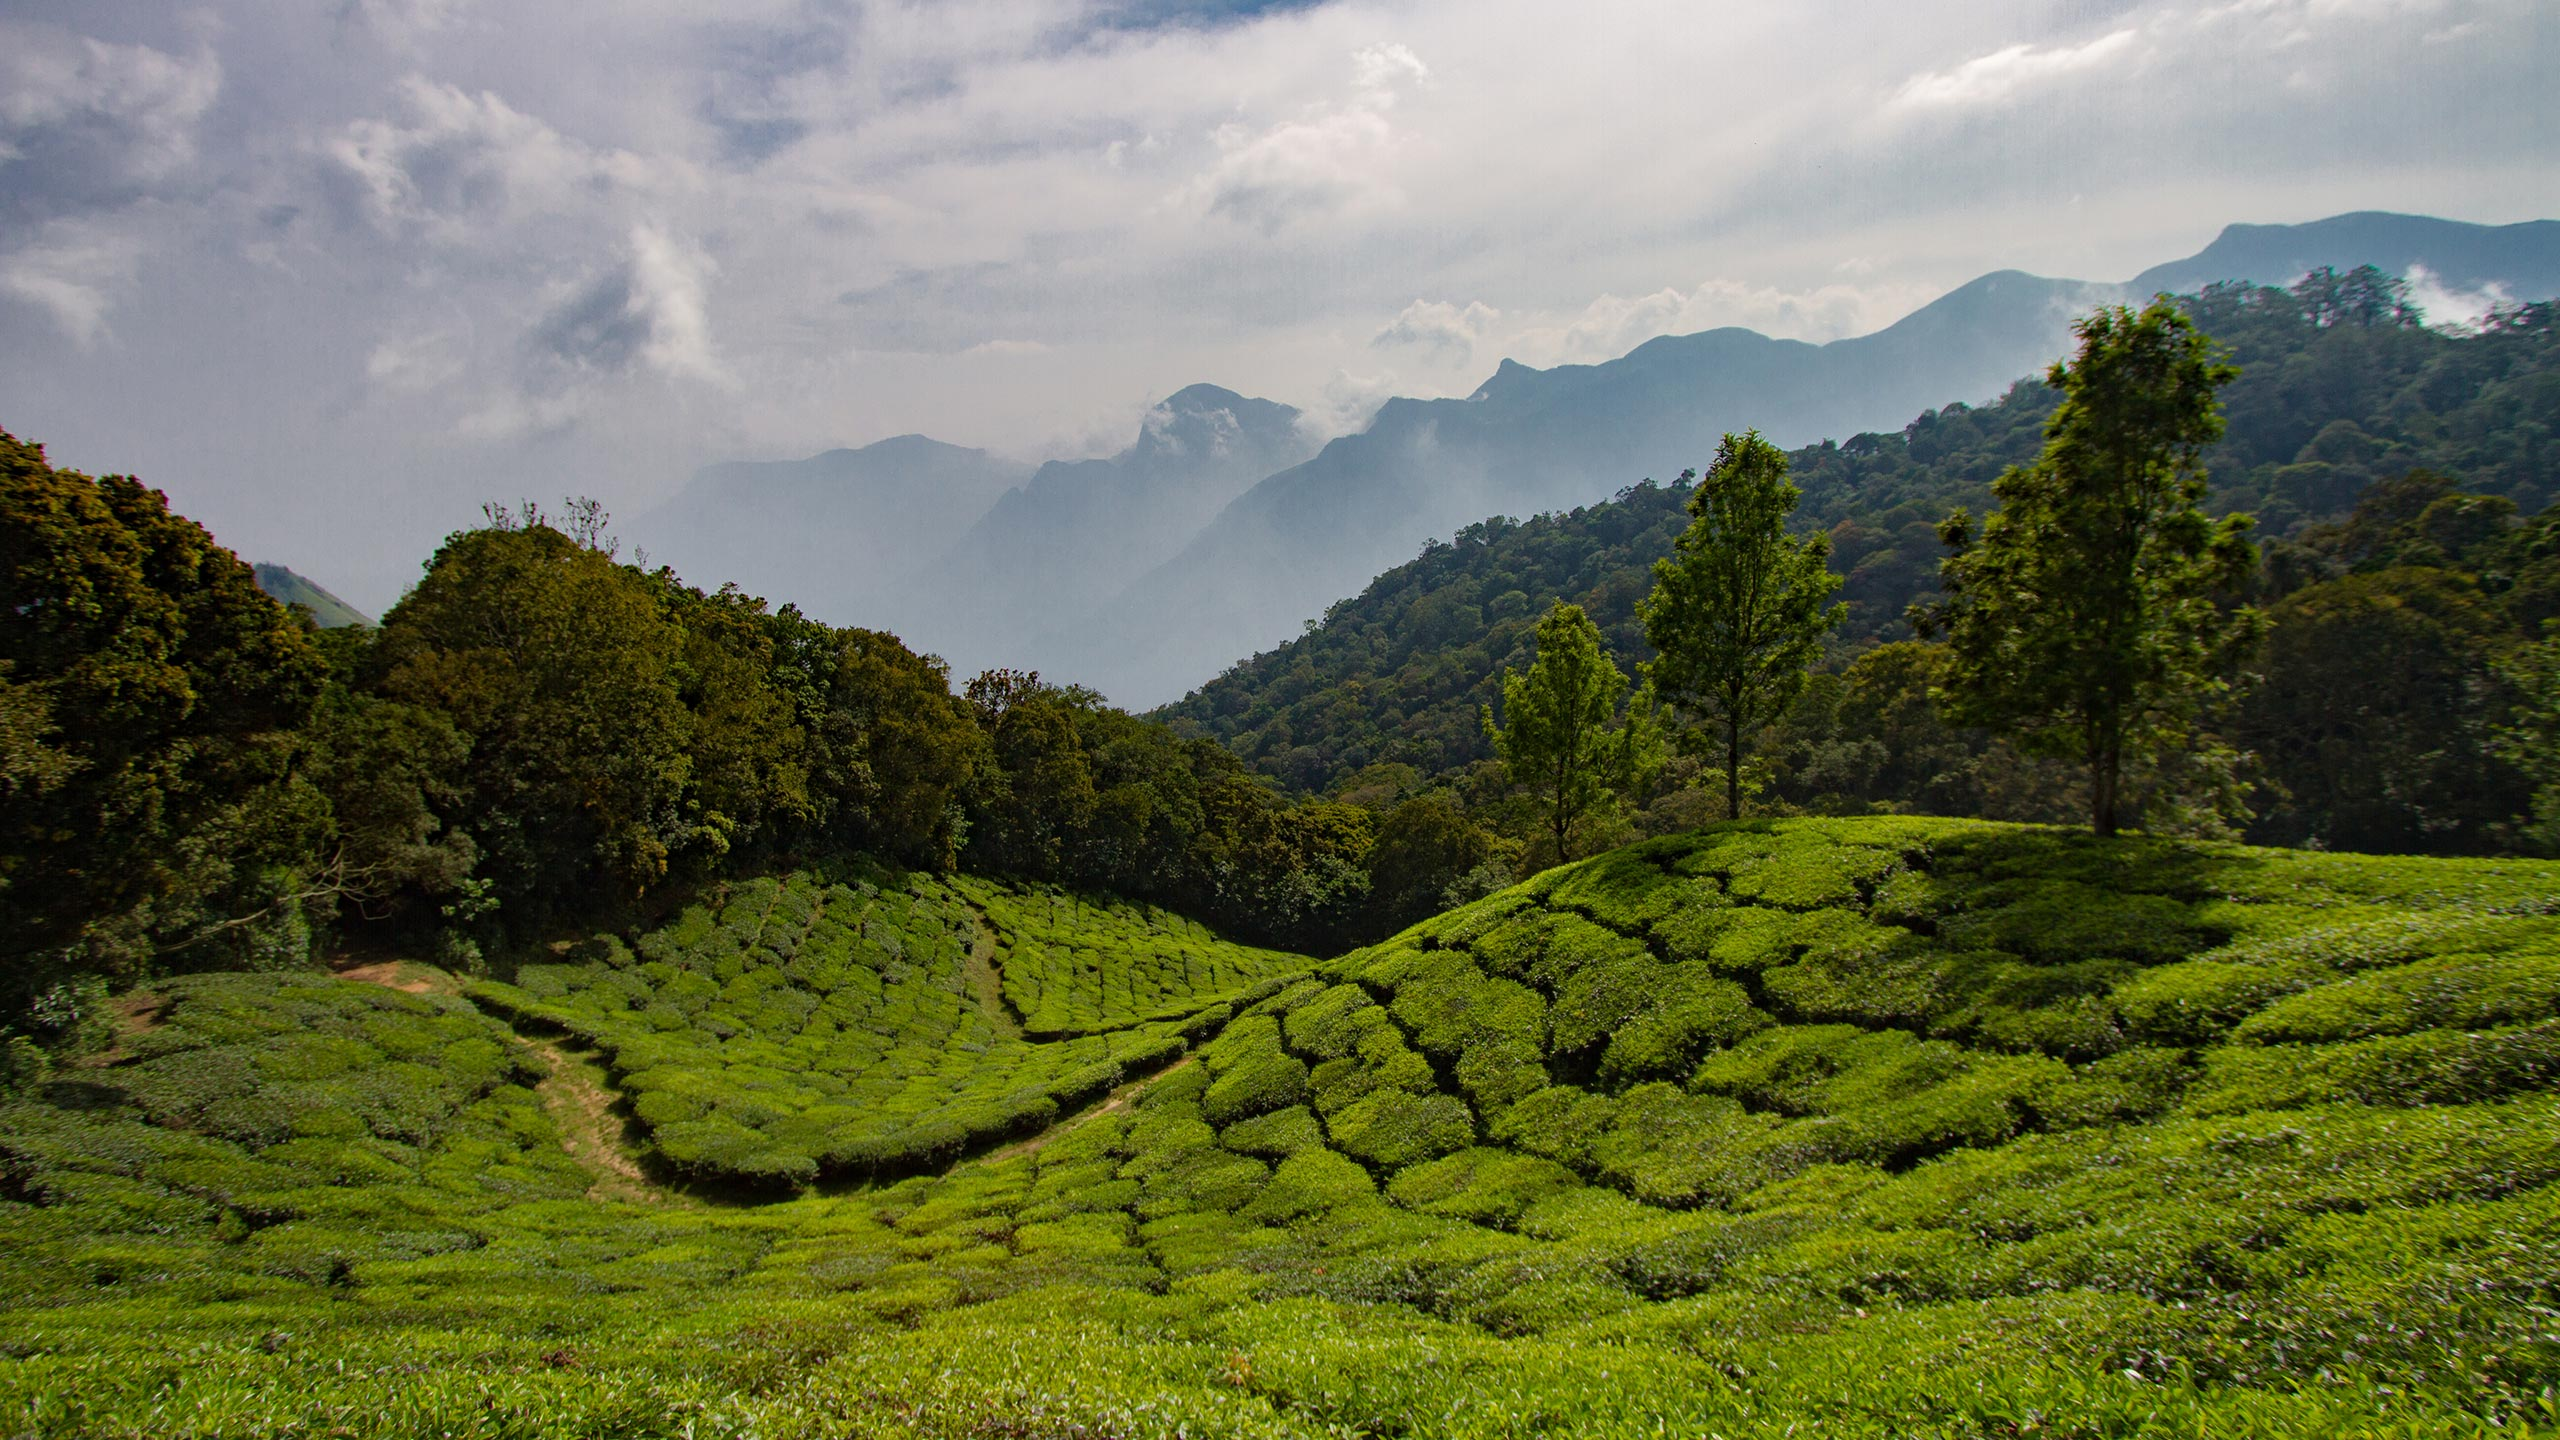 View of the Western Ghats from the Munnar tea fields